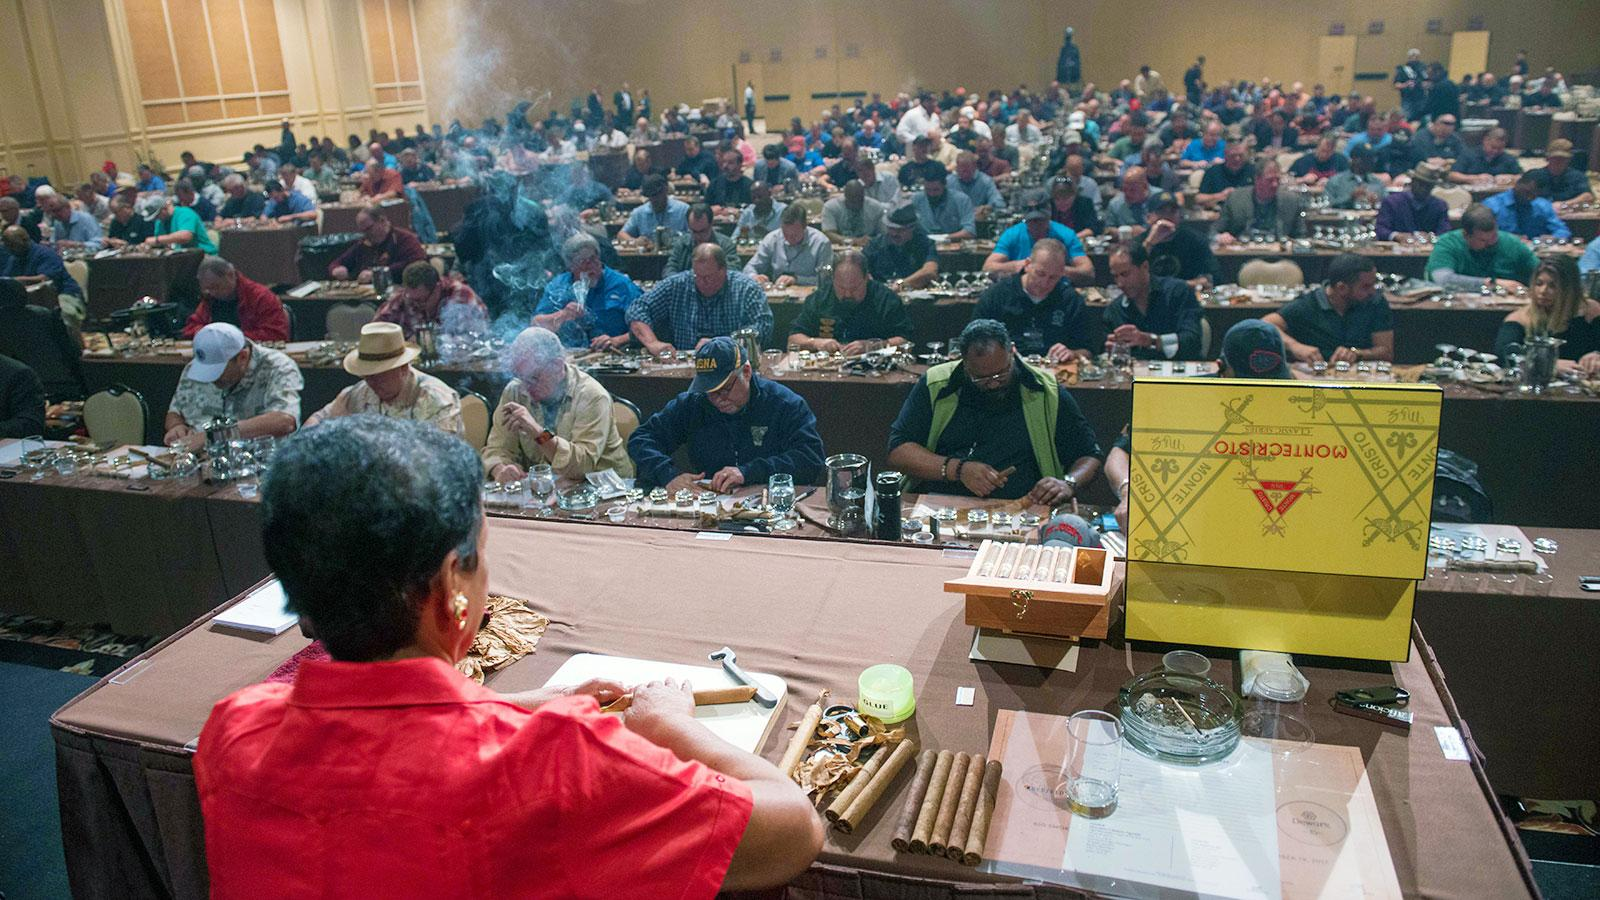 Lucrecia Valdez, master roller at Tabacalera de Garcia in the Dominican Republic, showed the audience step-by-step the proper method to roll a cigar.